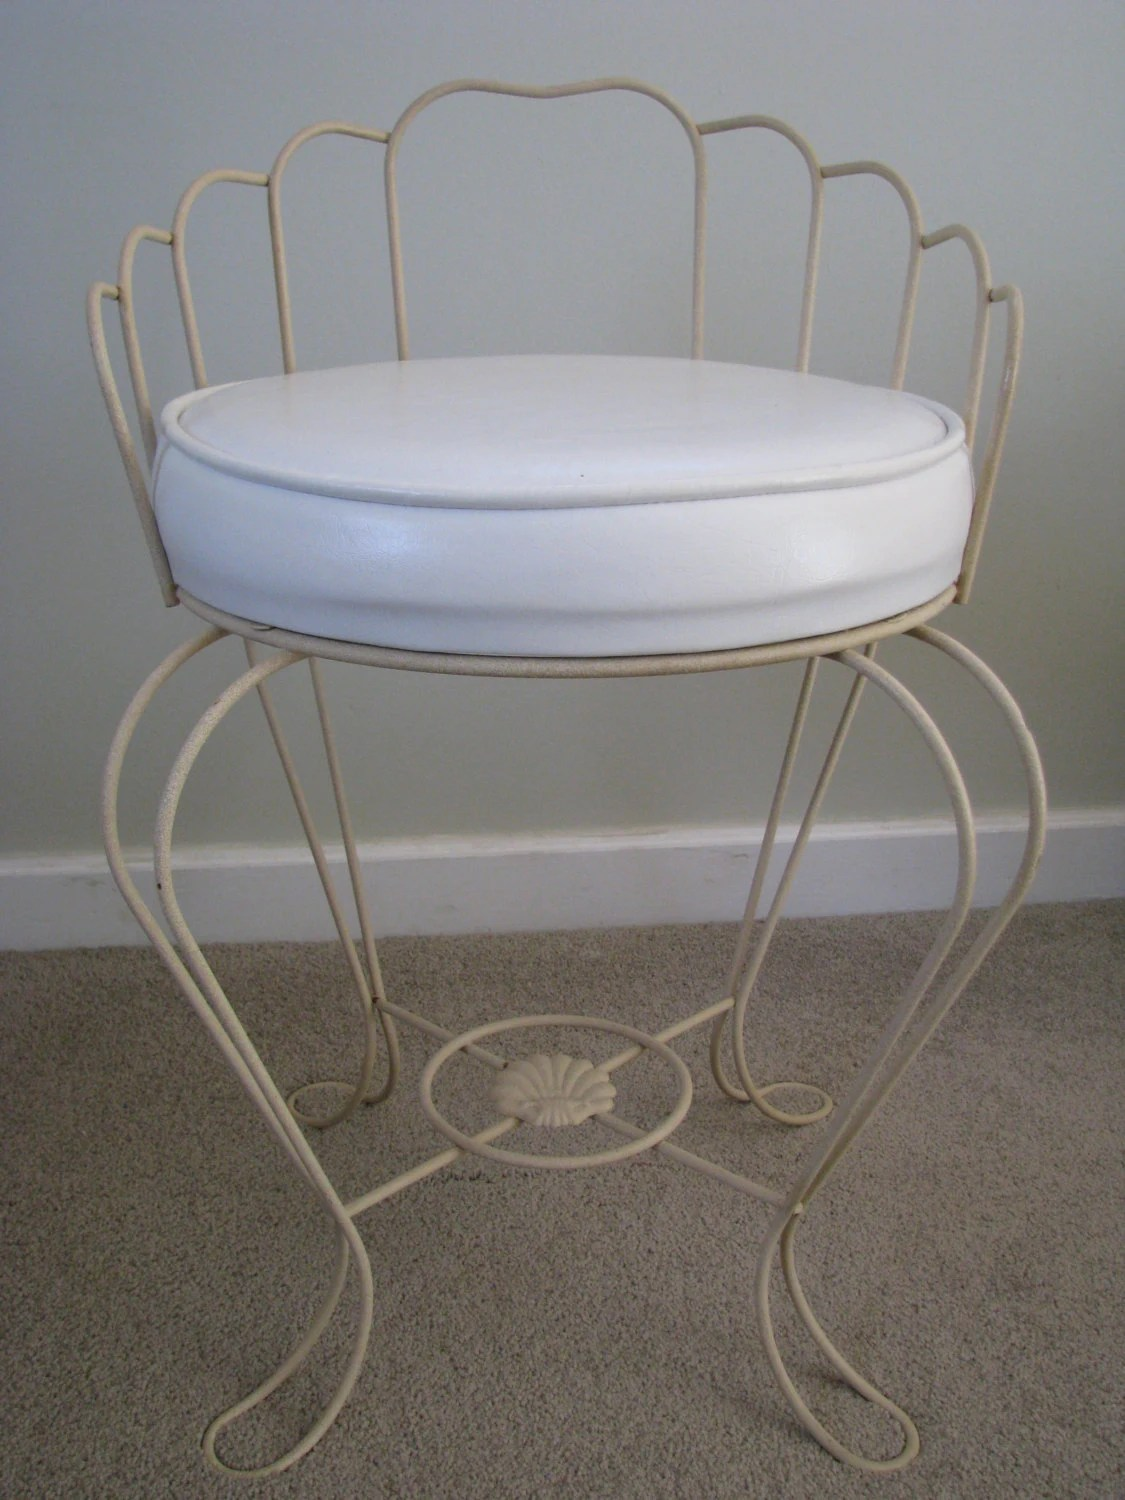 Vintage White Vinyl Padded Vanity Bench Stool Chair